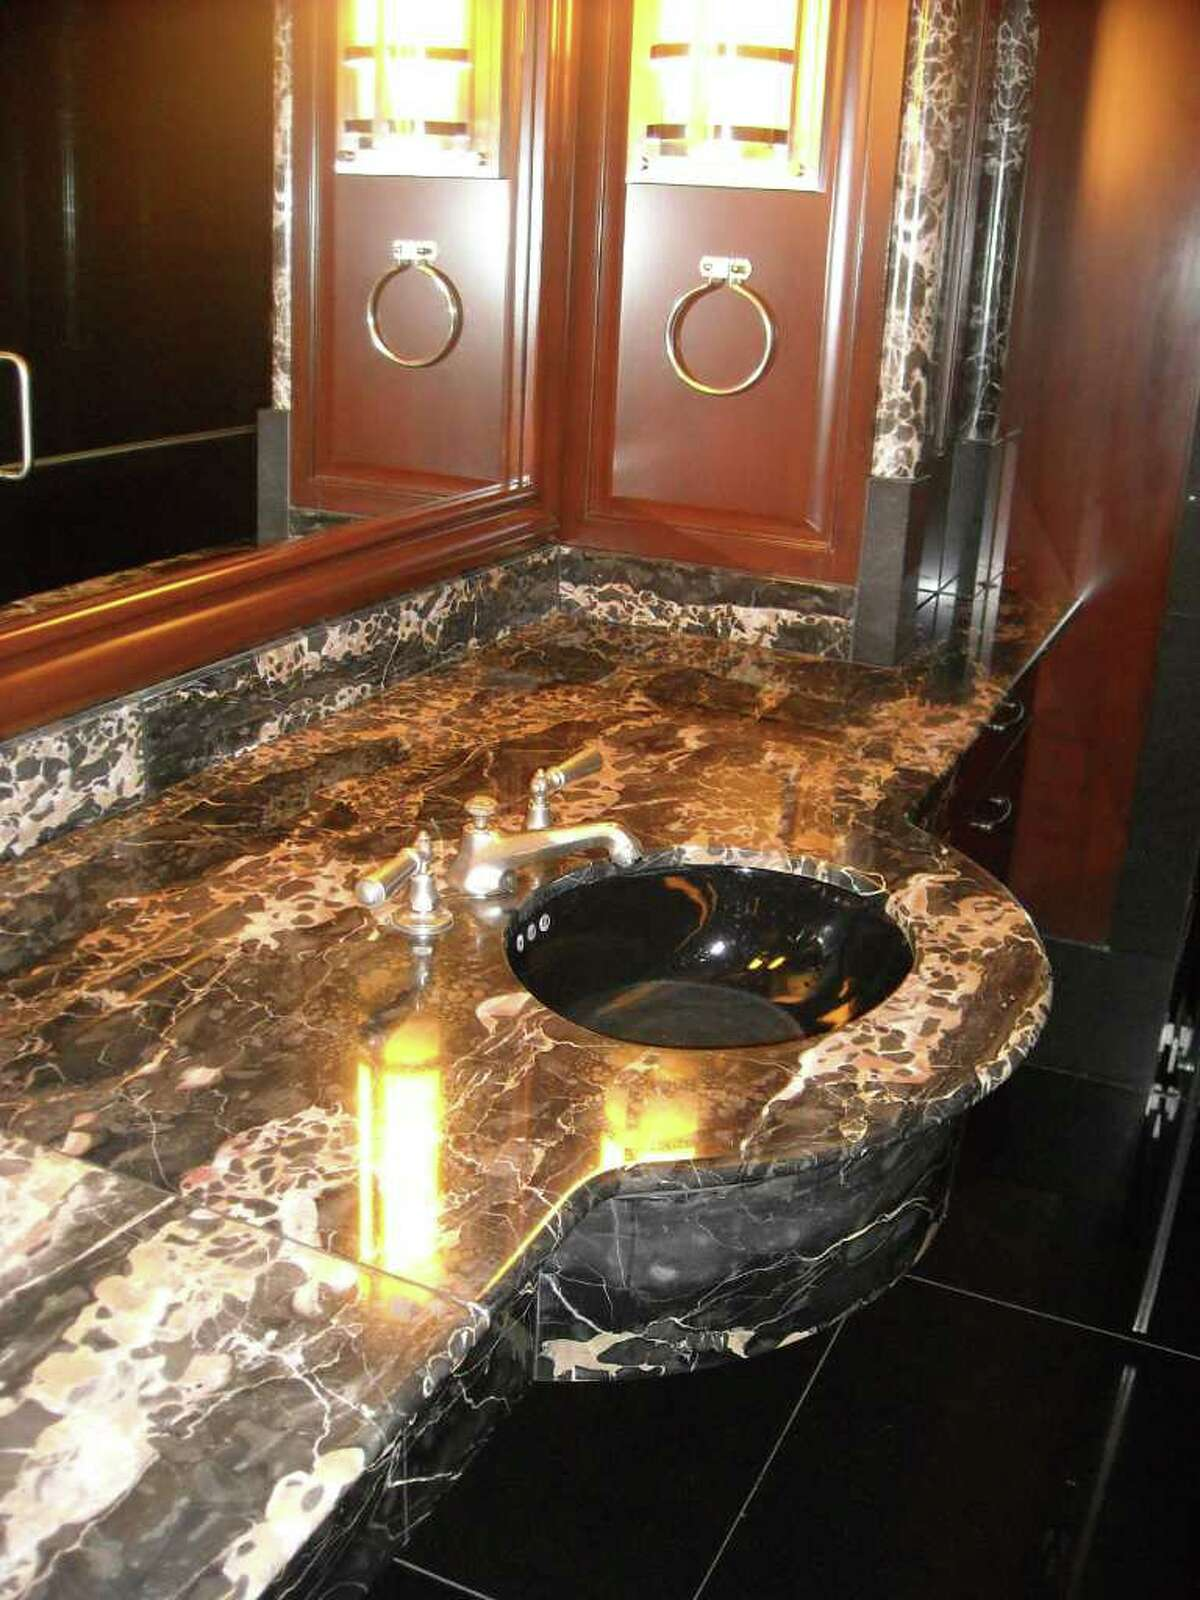 The executive sink in the bathroom of the private executive suite, which also has a shower and a closet, at the former headquarters of Stanford Financial Group.